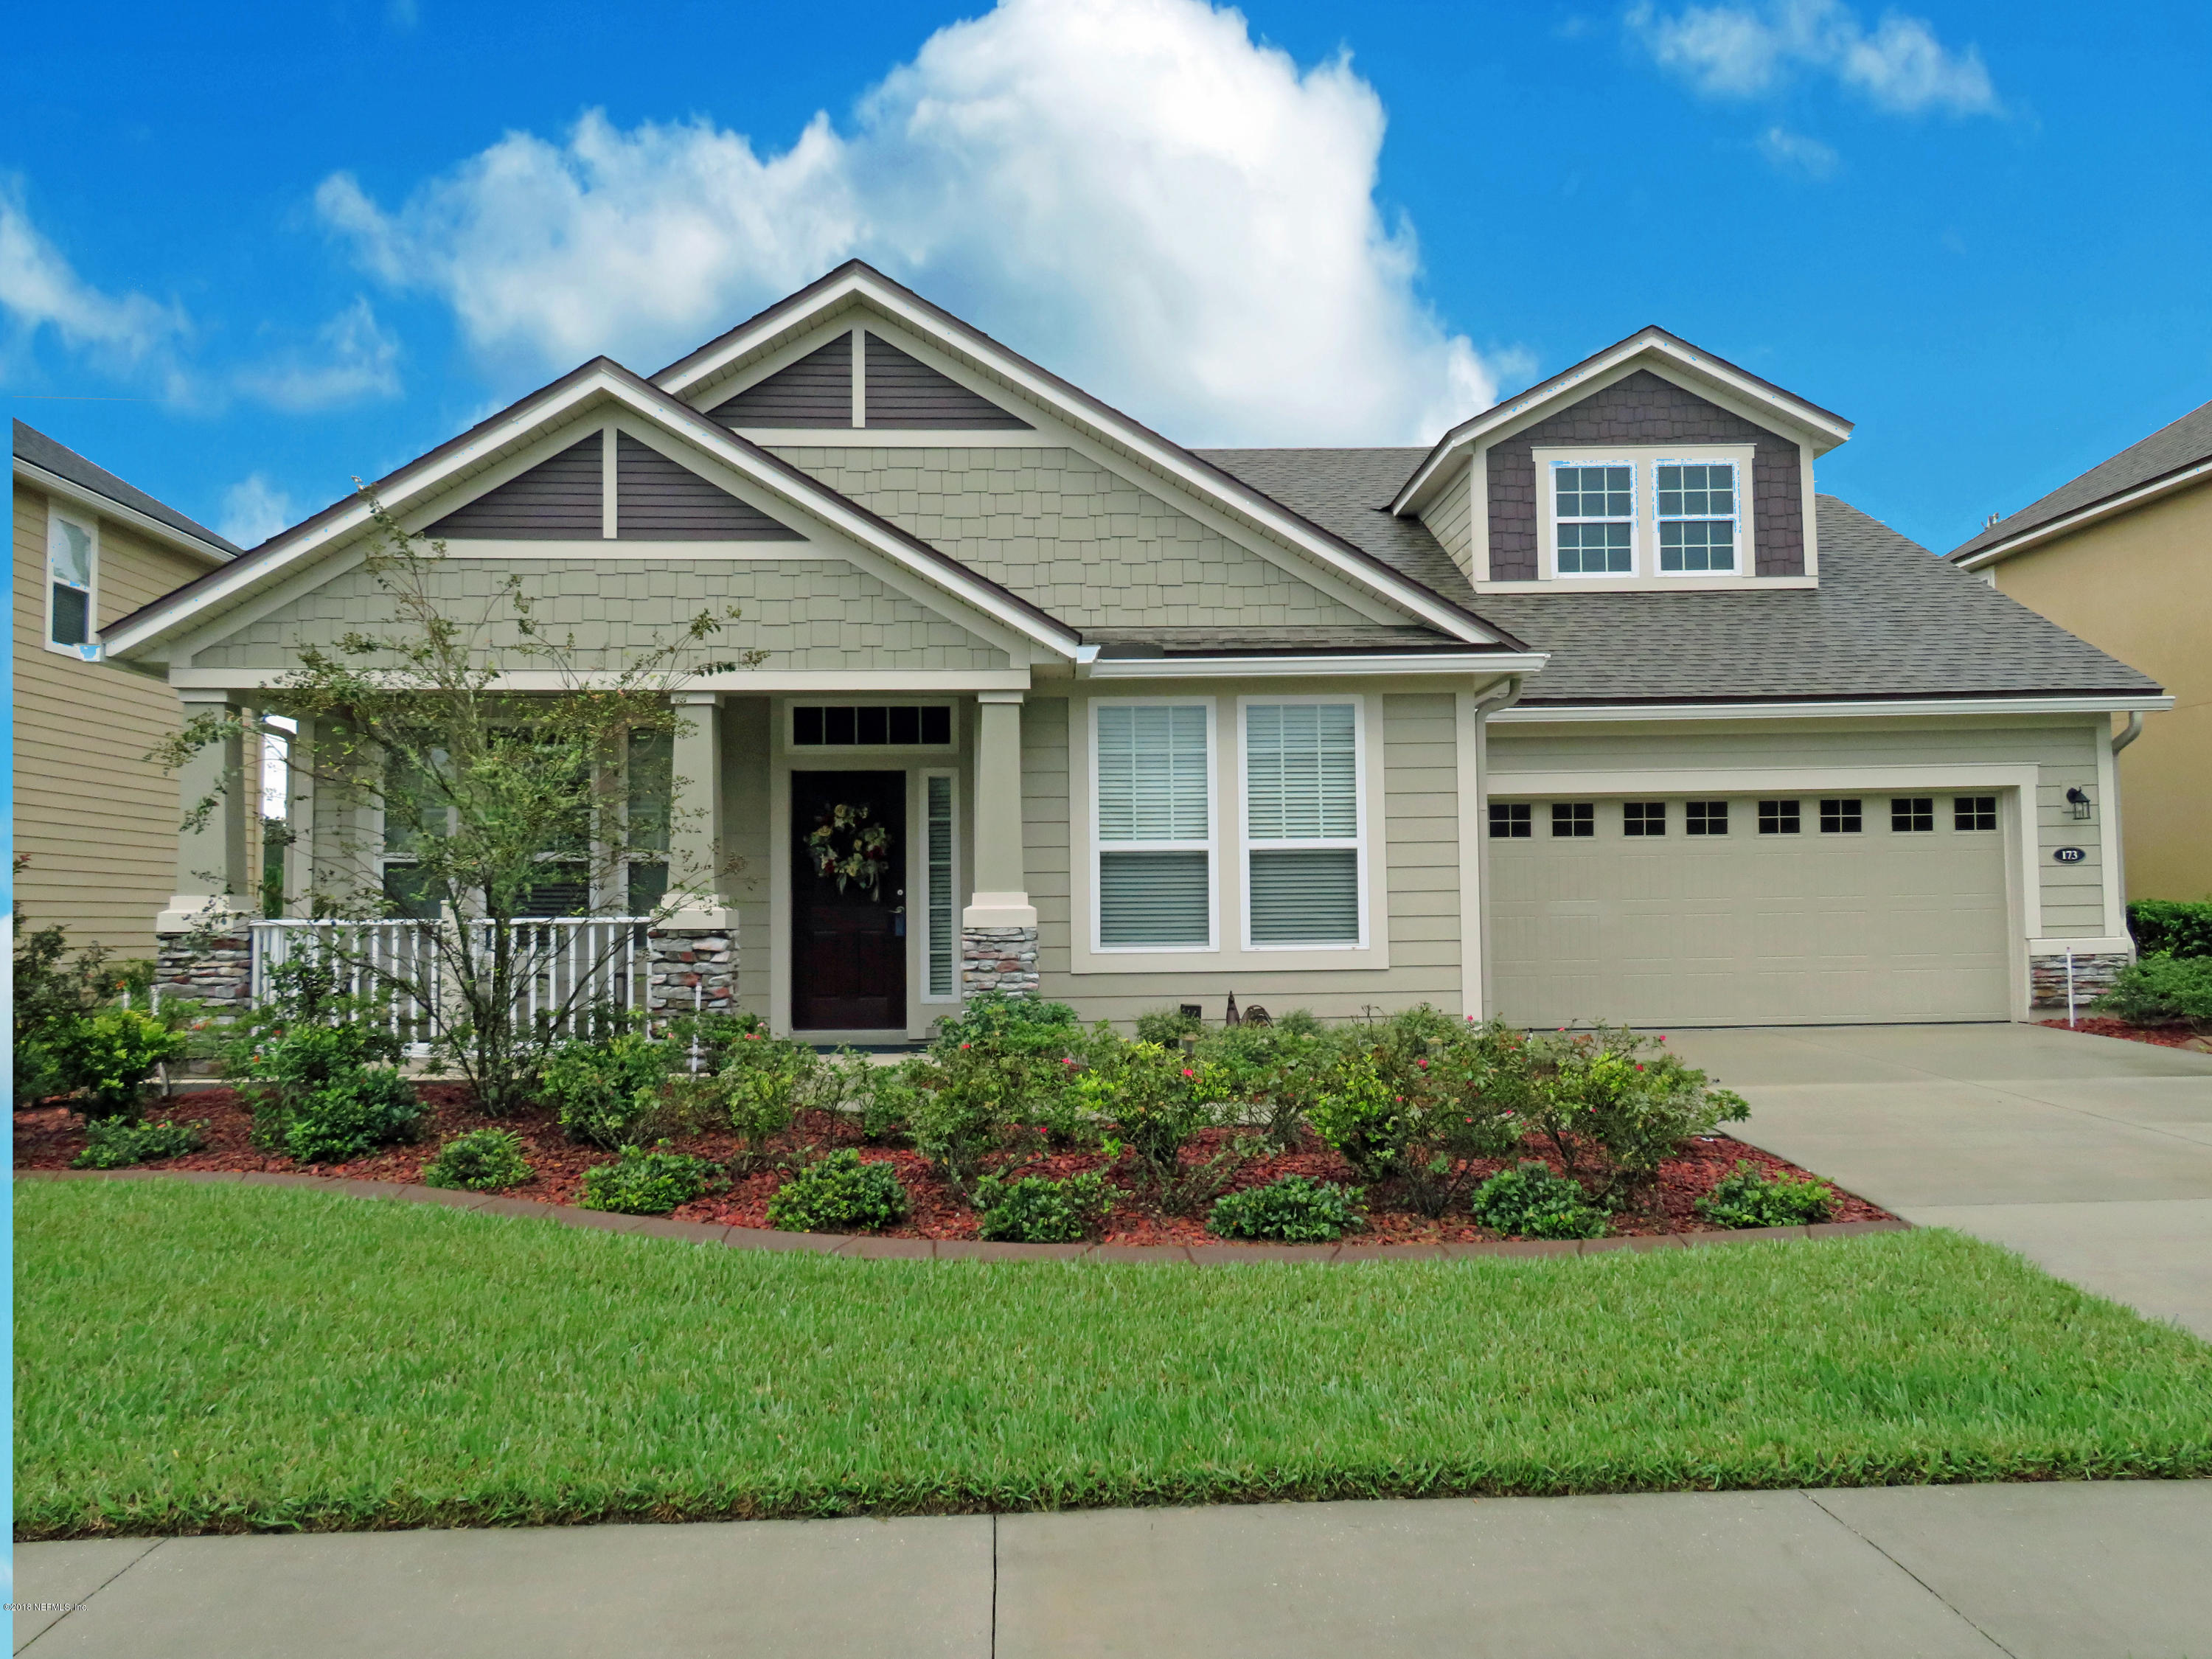 173 QUAIL CREEK, ST JOHNS, FLORIDA 32259, 4 Bedrooms Bedrooms, ,3 BathroomsBathrooms,Residential - single family,For sale,QUAIL CREEK,960290